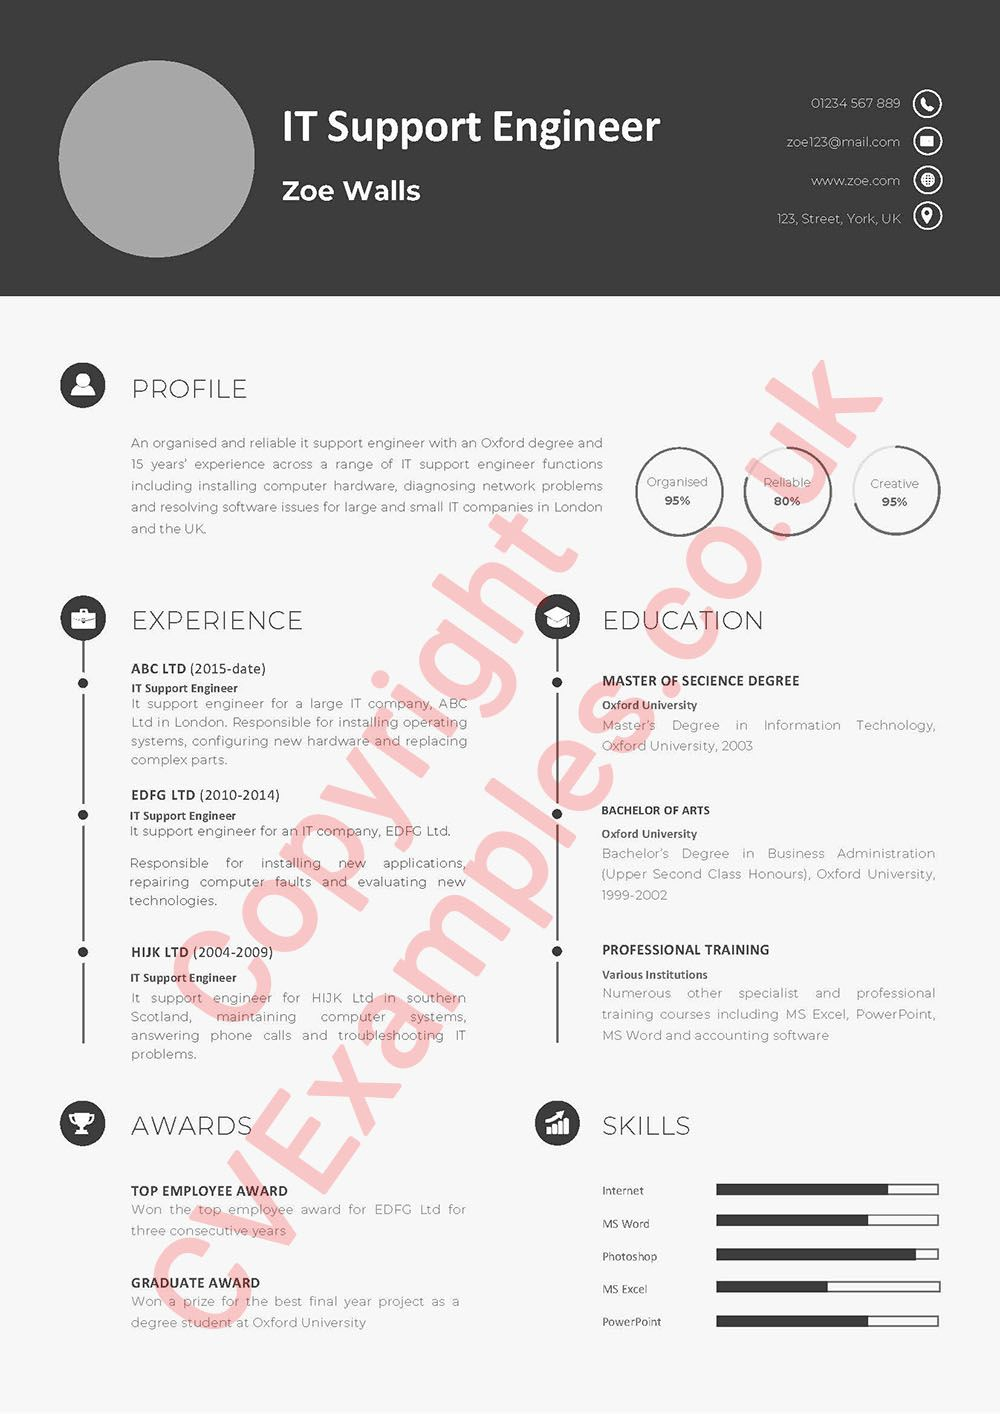 Free IT Support Engineer CV Example in 2020 Cv examples